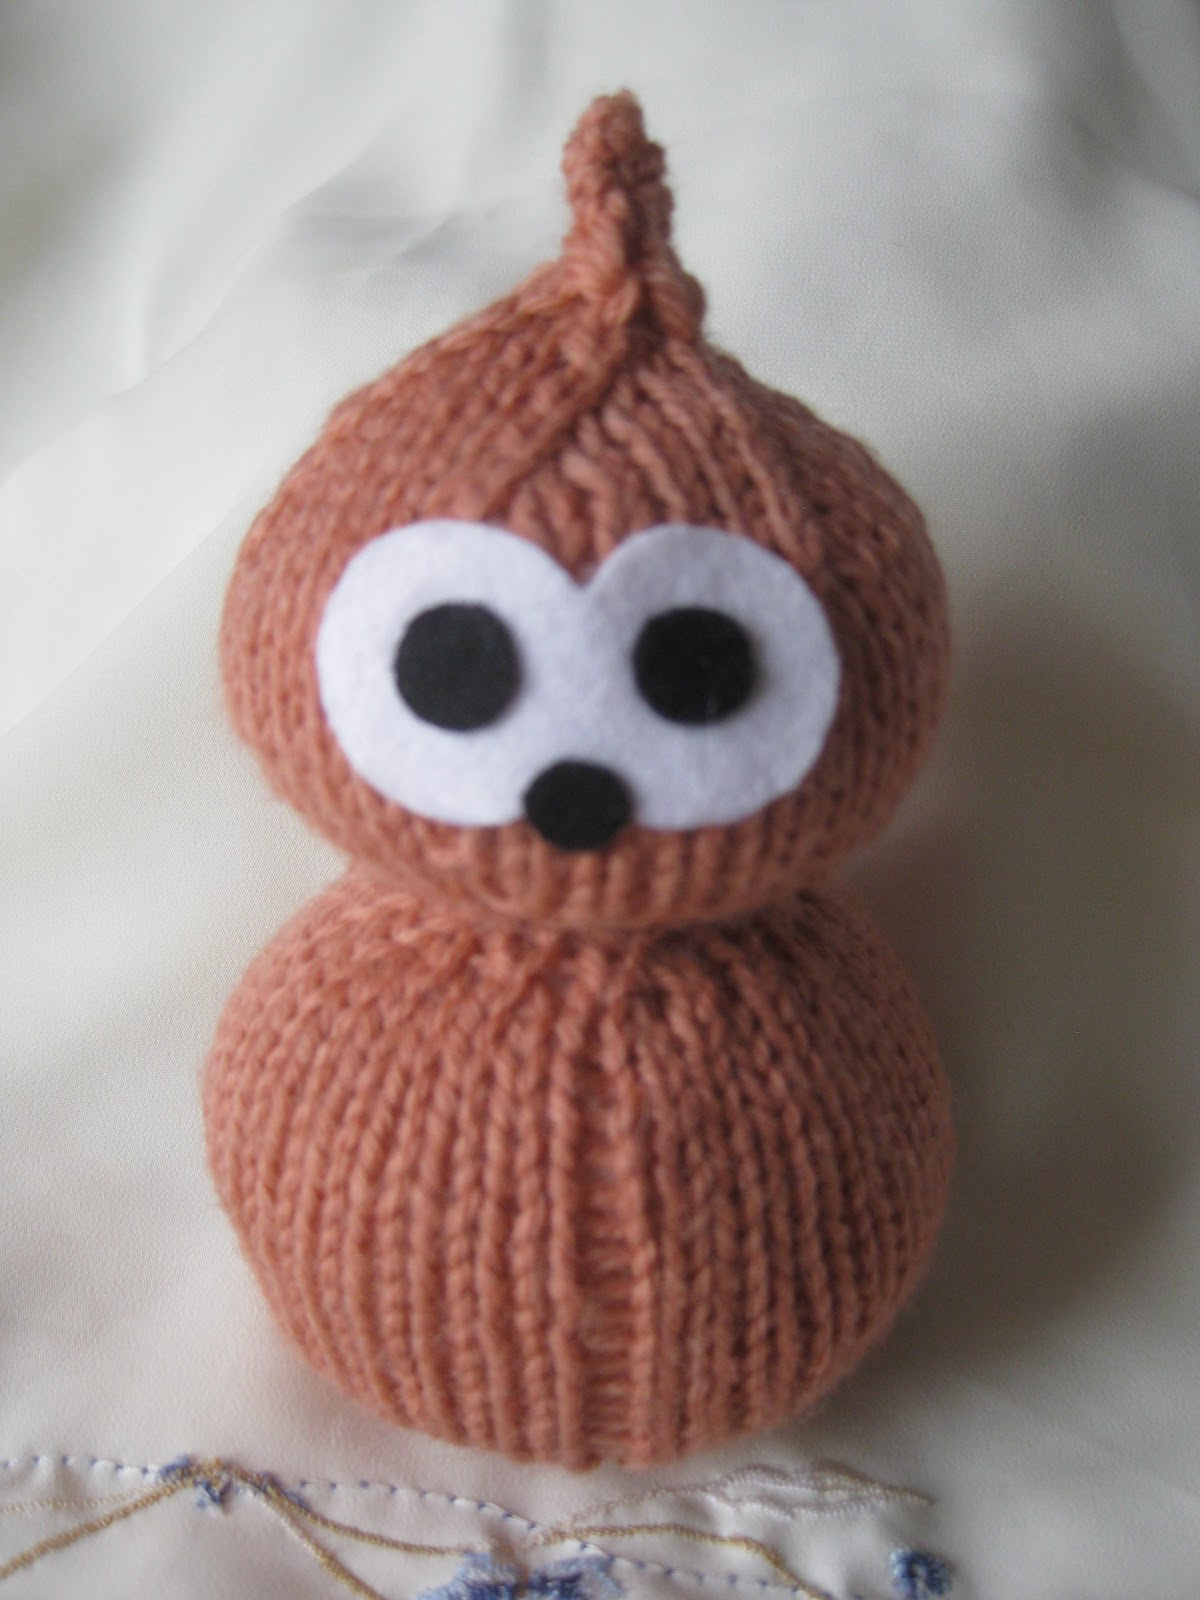 Knitting Patterns For Zingy : Needlecraft Corner: Say Hello to Zingy